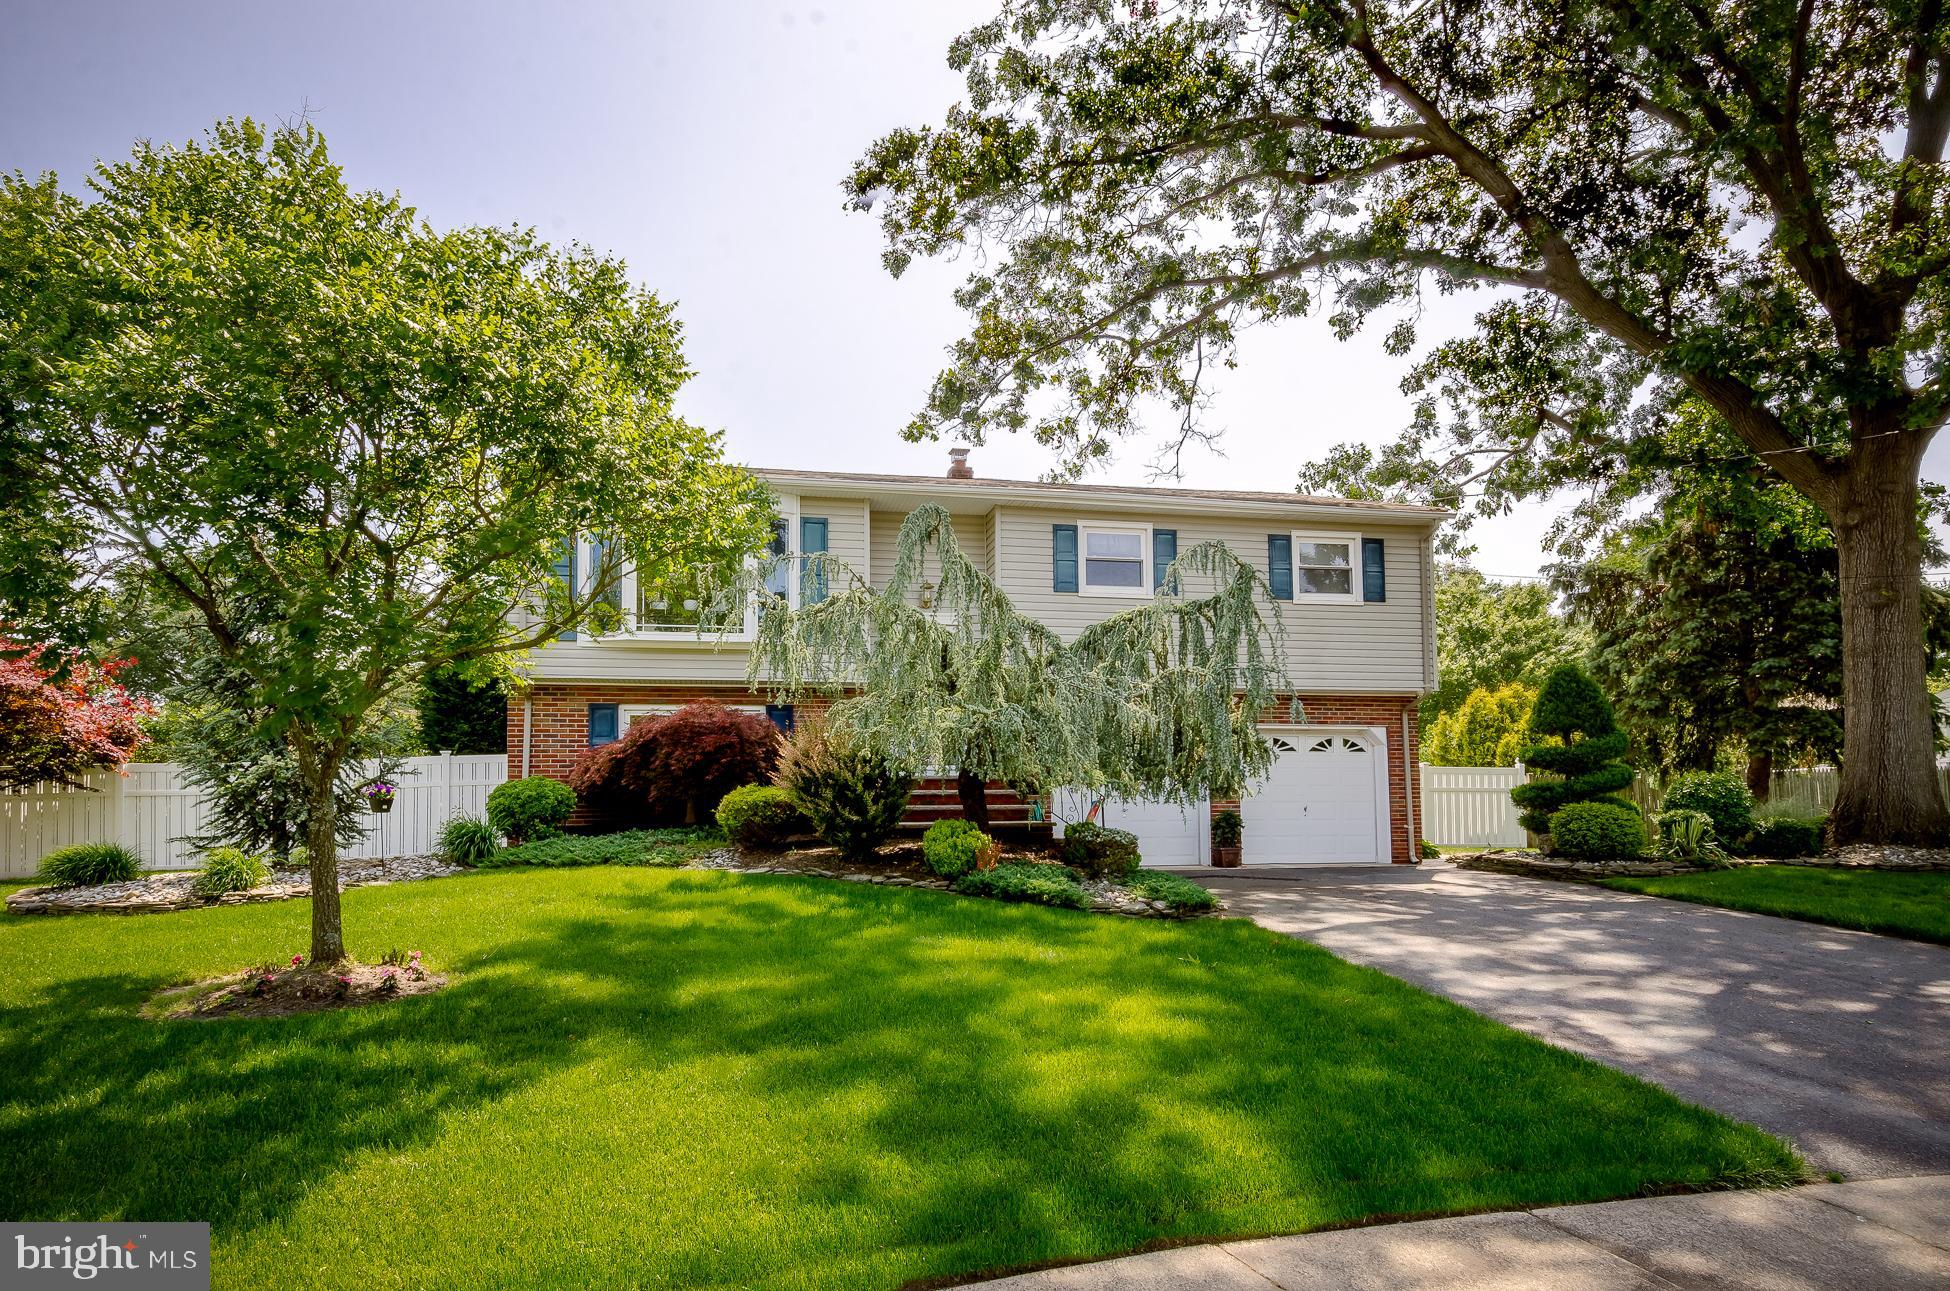 34 PAMELA COURT, SPOTSWOOD, NJ 08884